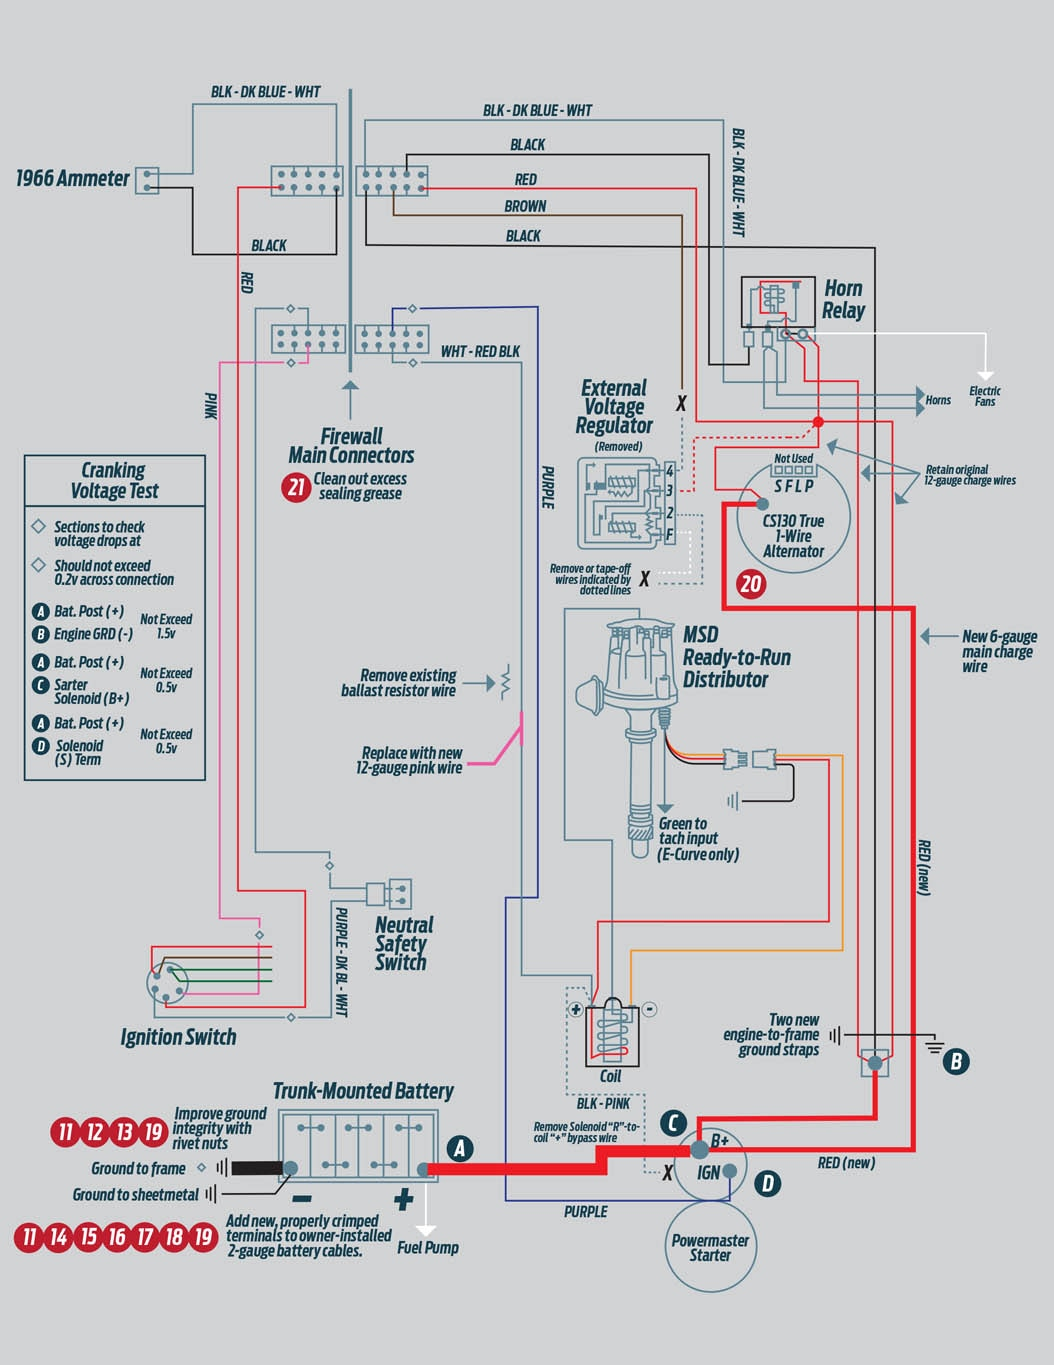 1966 chevelle dash wiring harness free download diagram wiring library 1966 chevelle wiring diagram online 1966 [ 1054 x 1365 Pixel ]